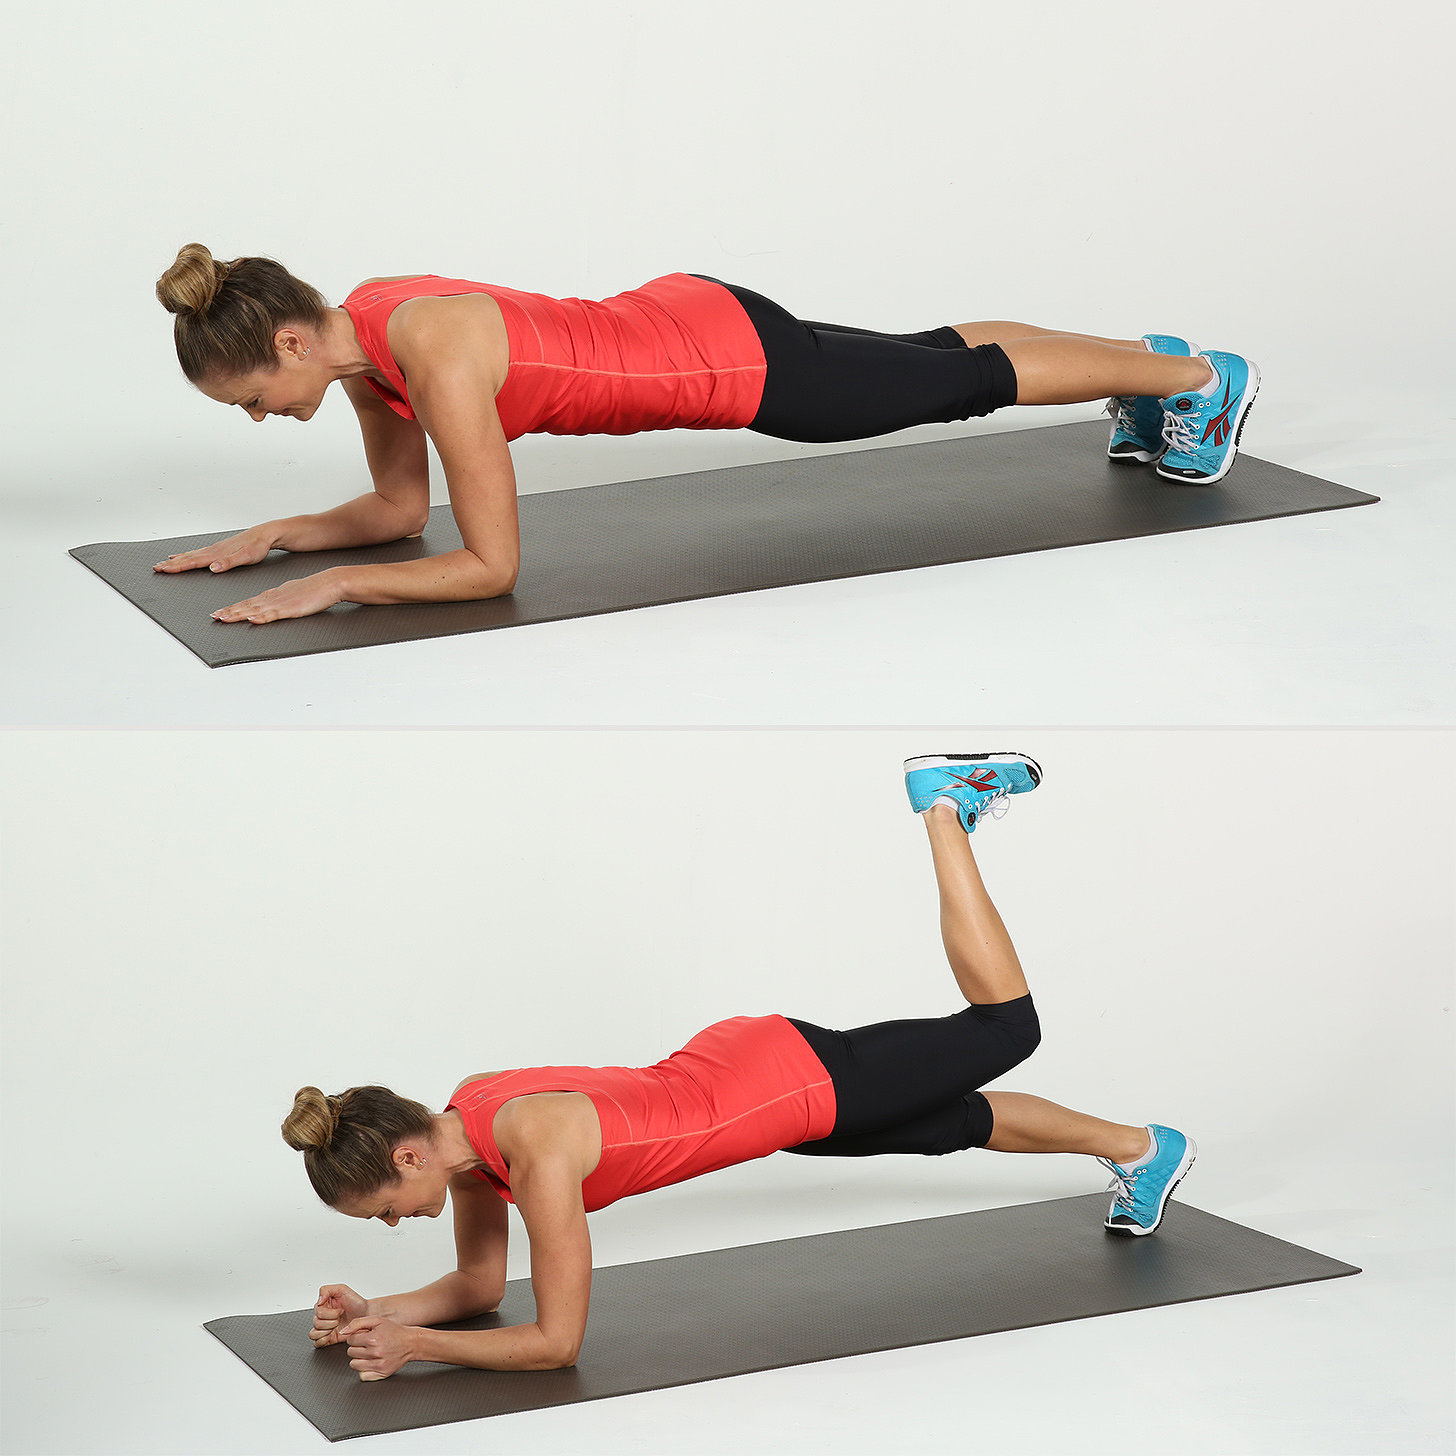 Low plank from elbows